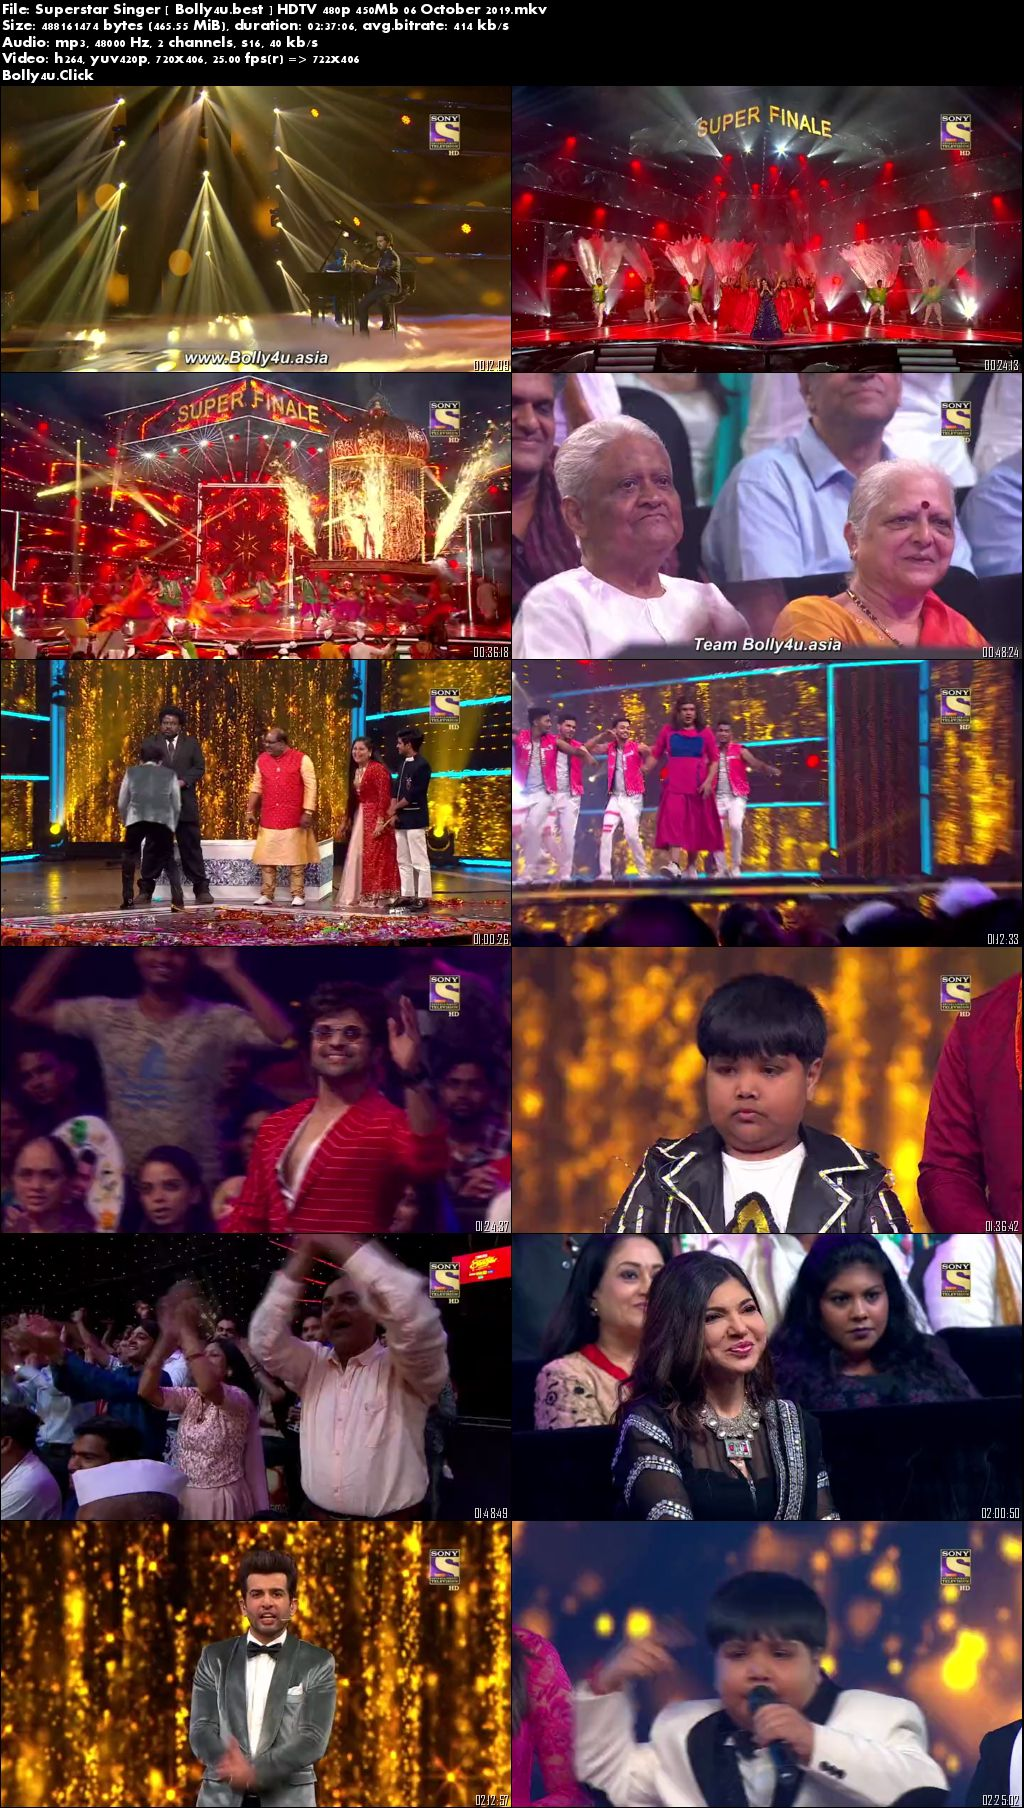 Superstar Singer HDTV 480p 450Mb Grand Finale 06 October 2019 Download